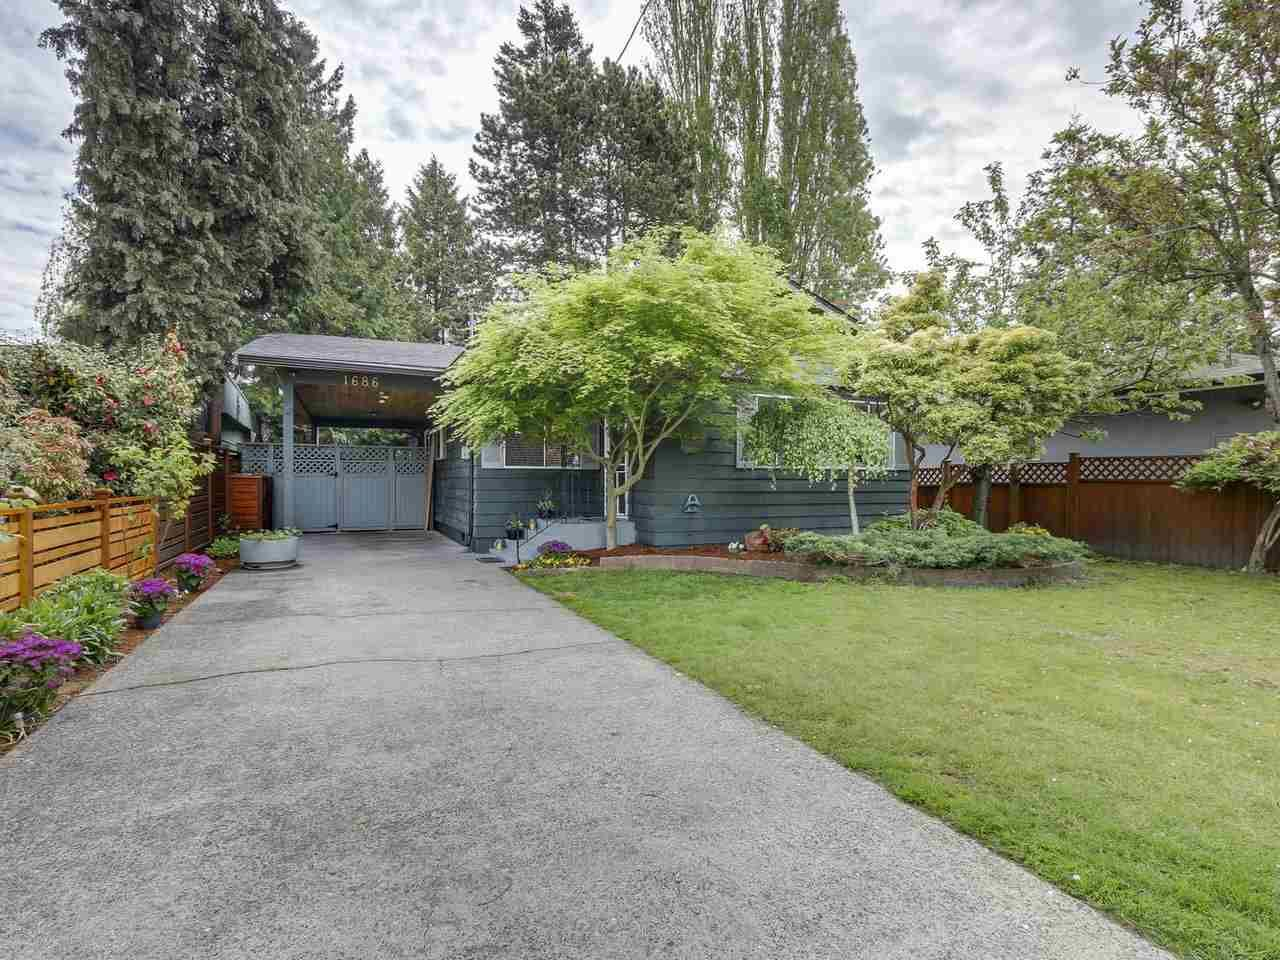 Main Photo: 1686 ENDERBY AVENUE in Delta: Beach Grove House for sale (Tsawwassen)  : MLS®# R2211903